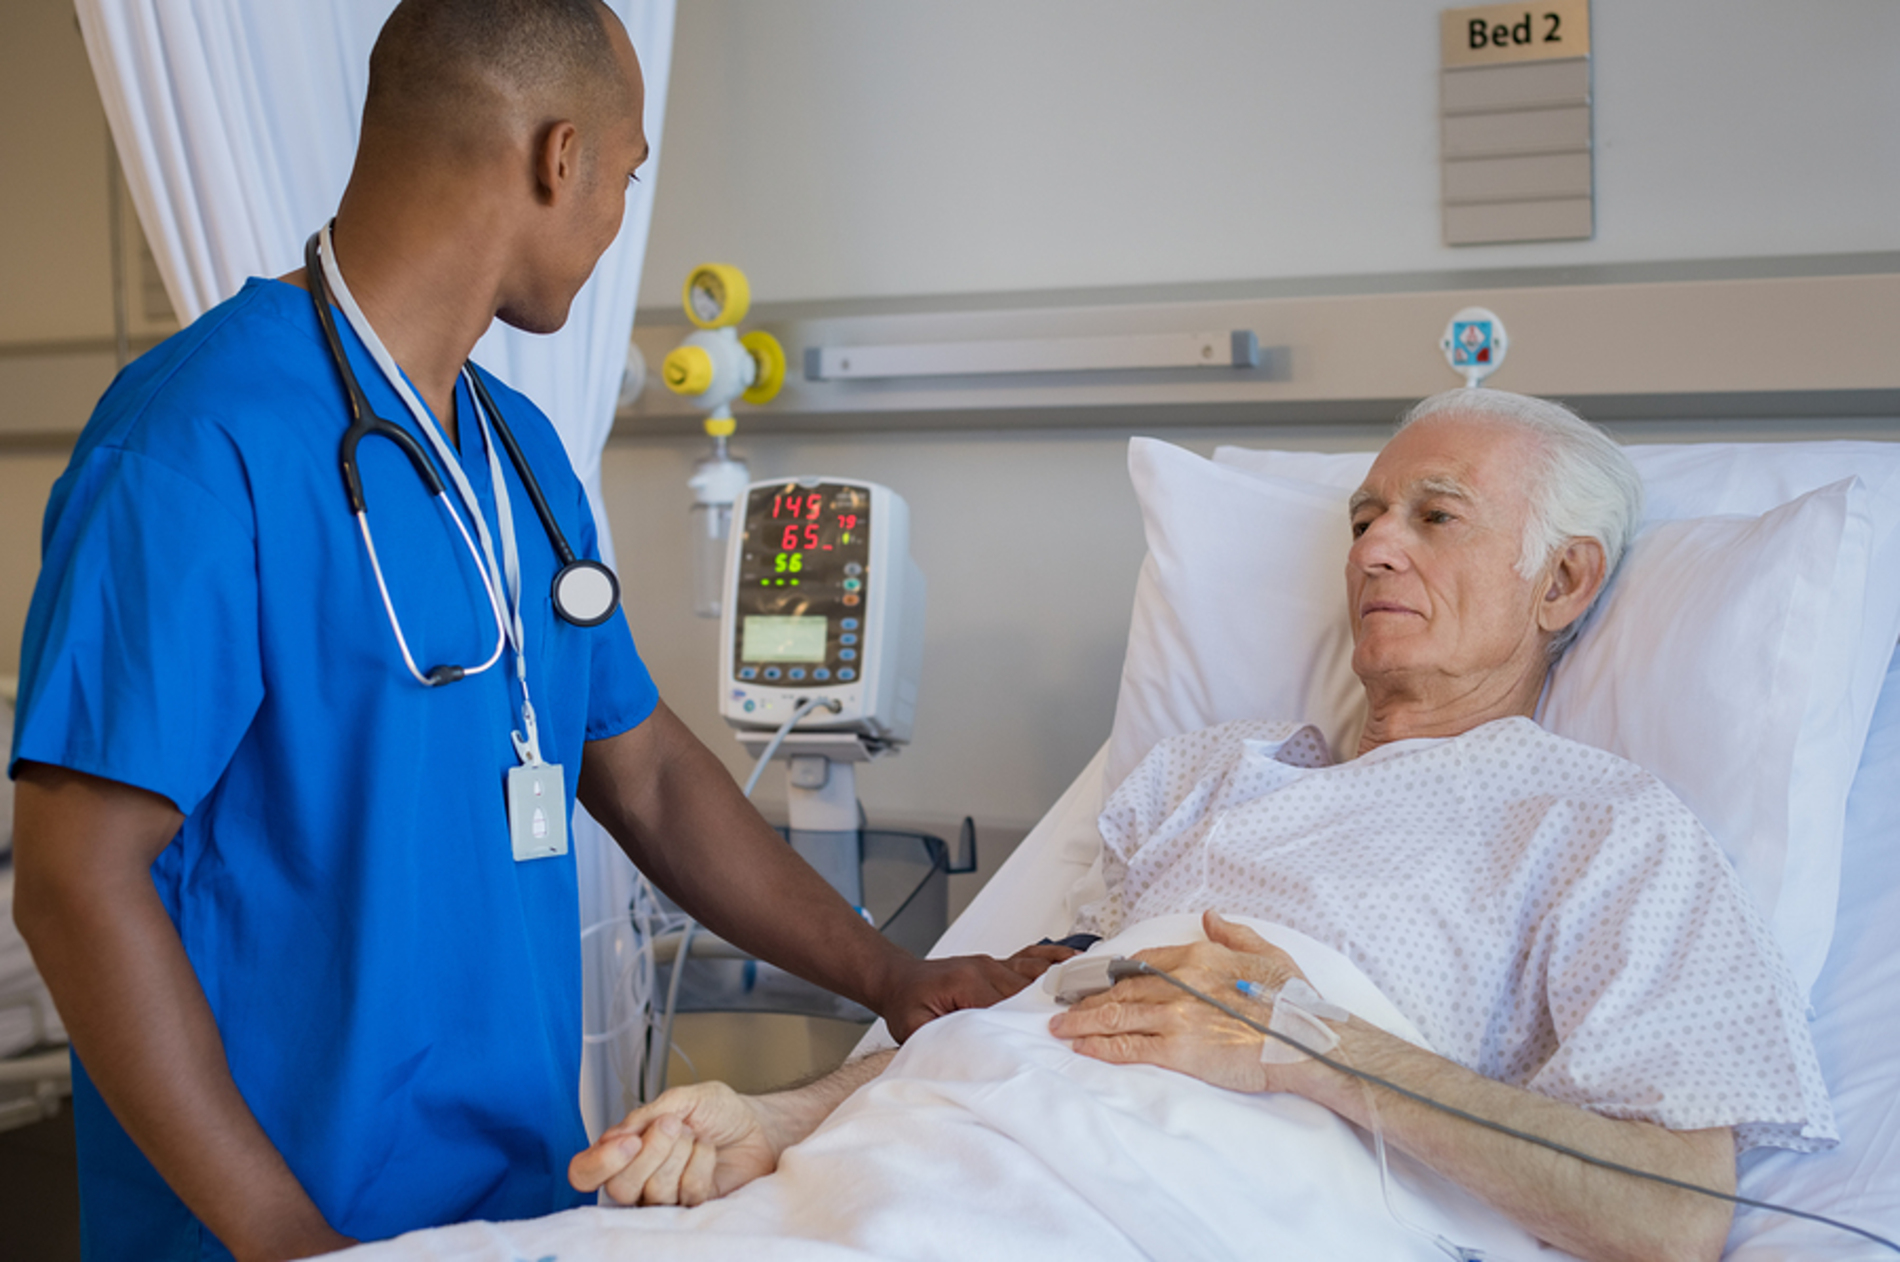 Older male patient getting assistance from a nurse.